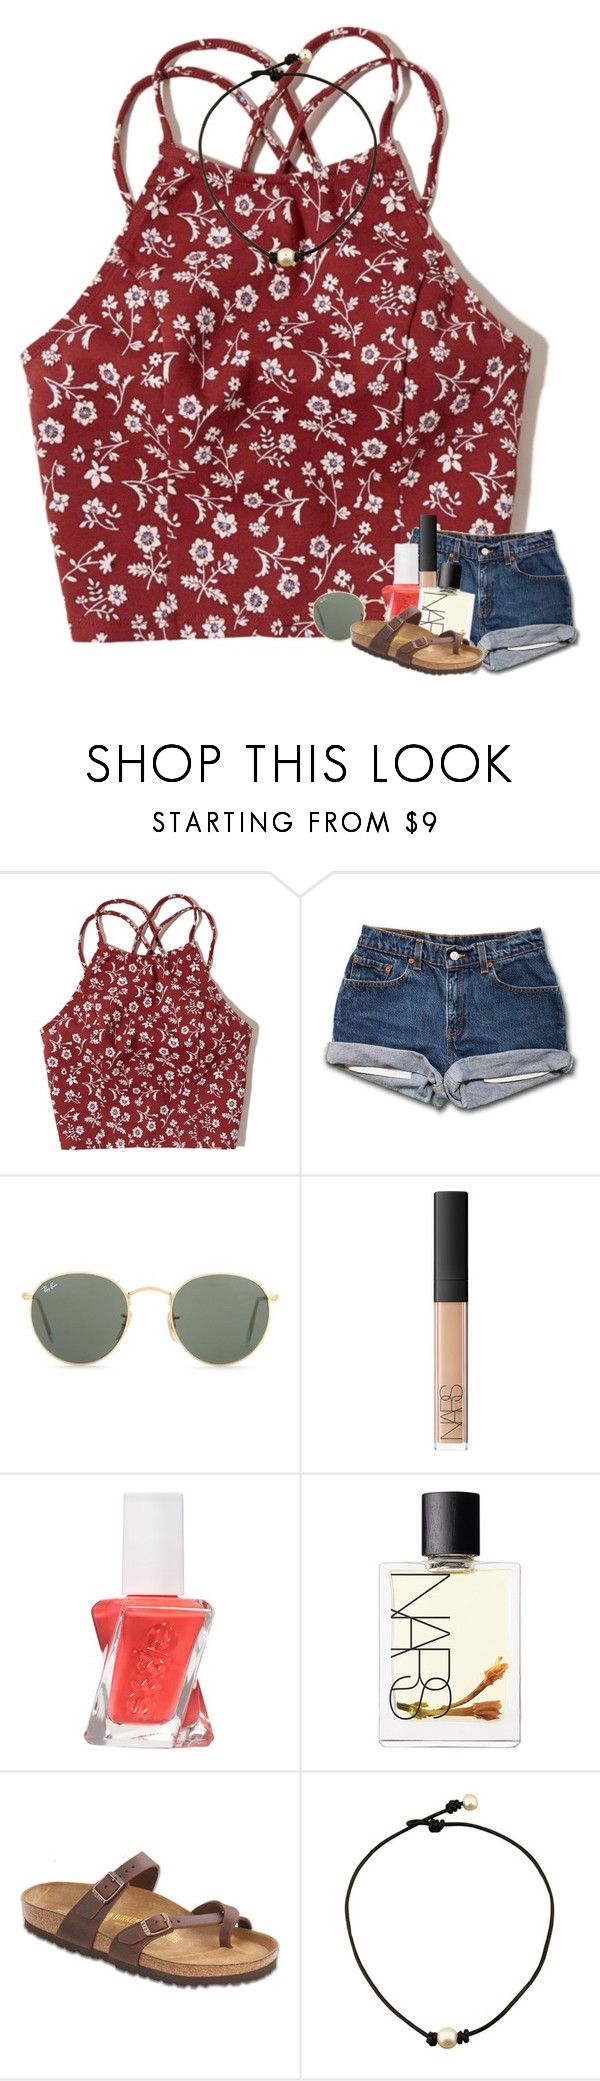 """birk contest"" by madelinelurene ❤ liked on Polyvore featuring Hollister Co., Ray-Ban, NARS Cosmetics, Essie and Birkenstock"